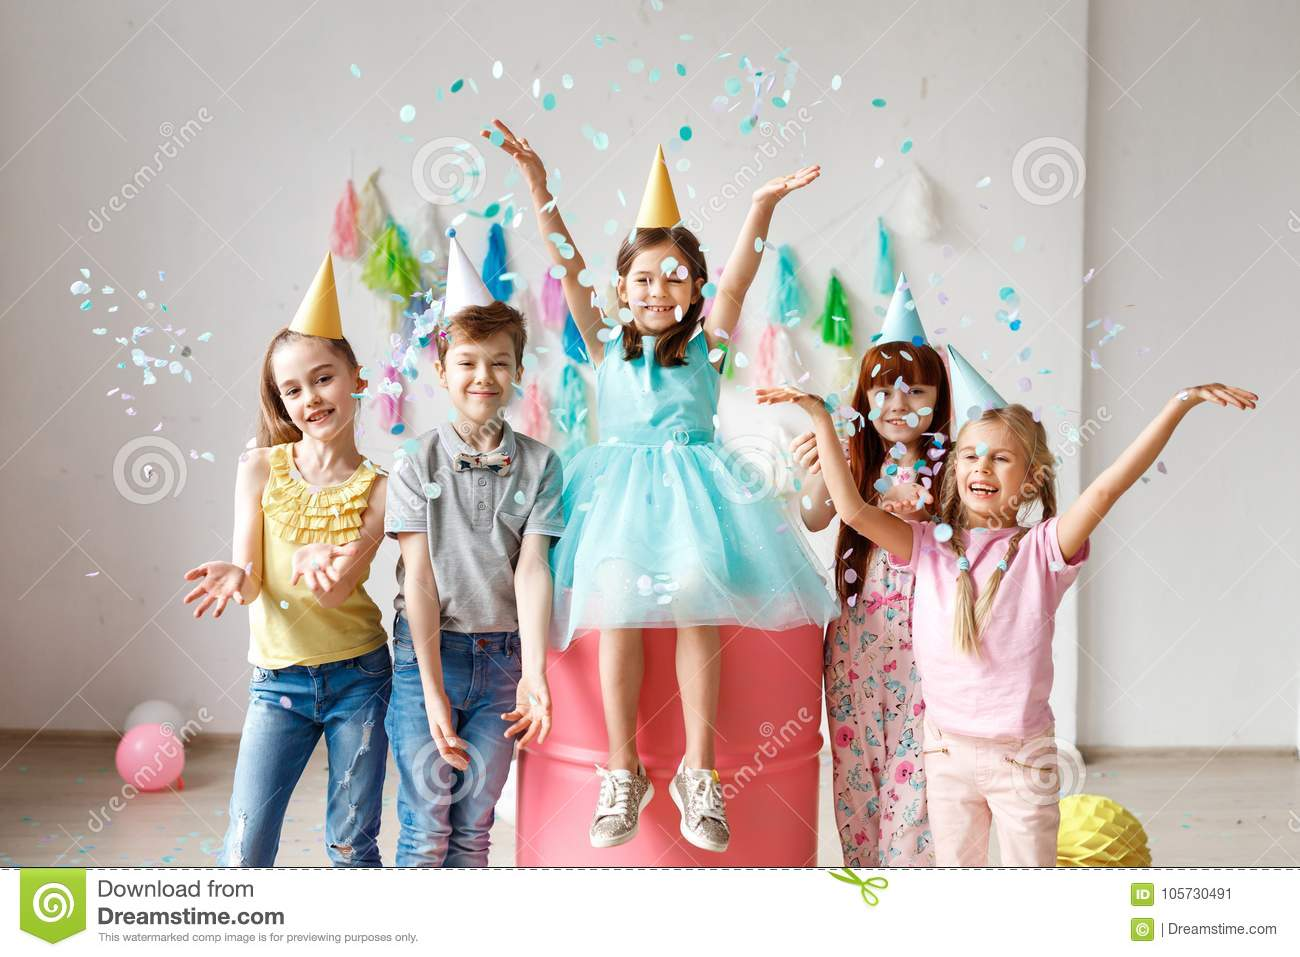 Adorable kids have fun together, throw colourful confetti, wears cone hats, have fun at birthday party, play together in